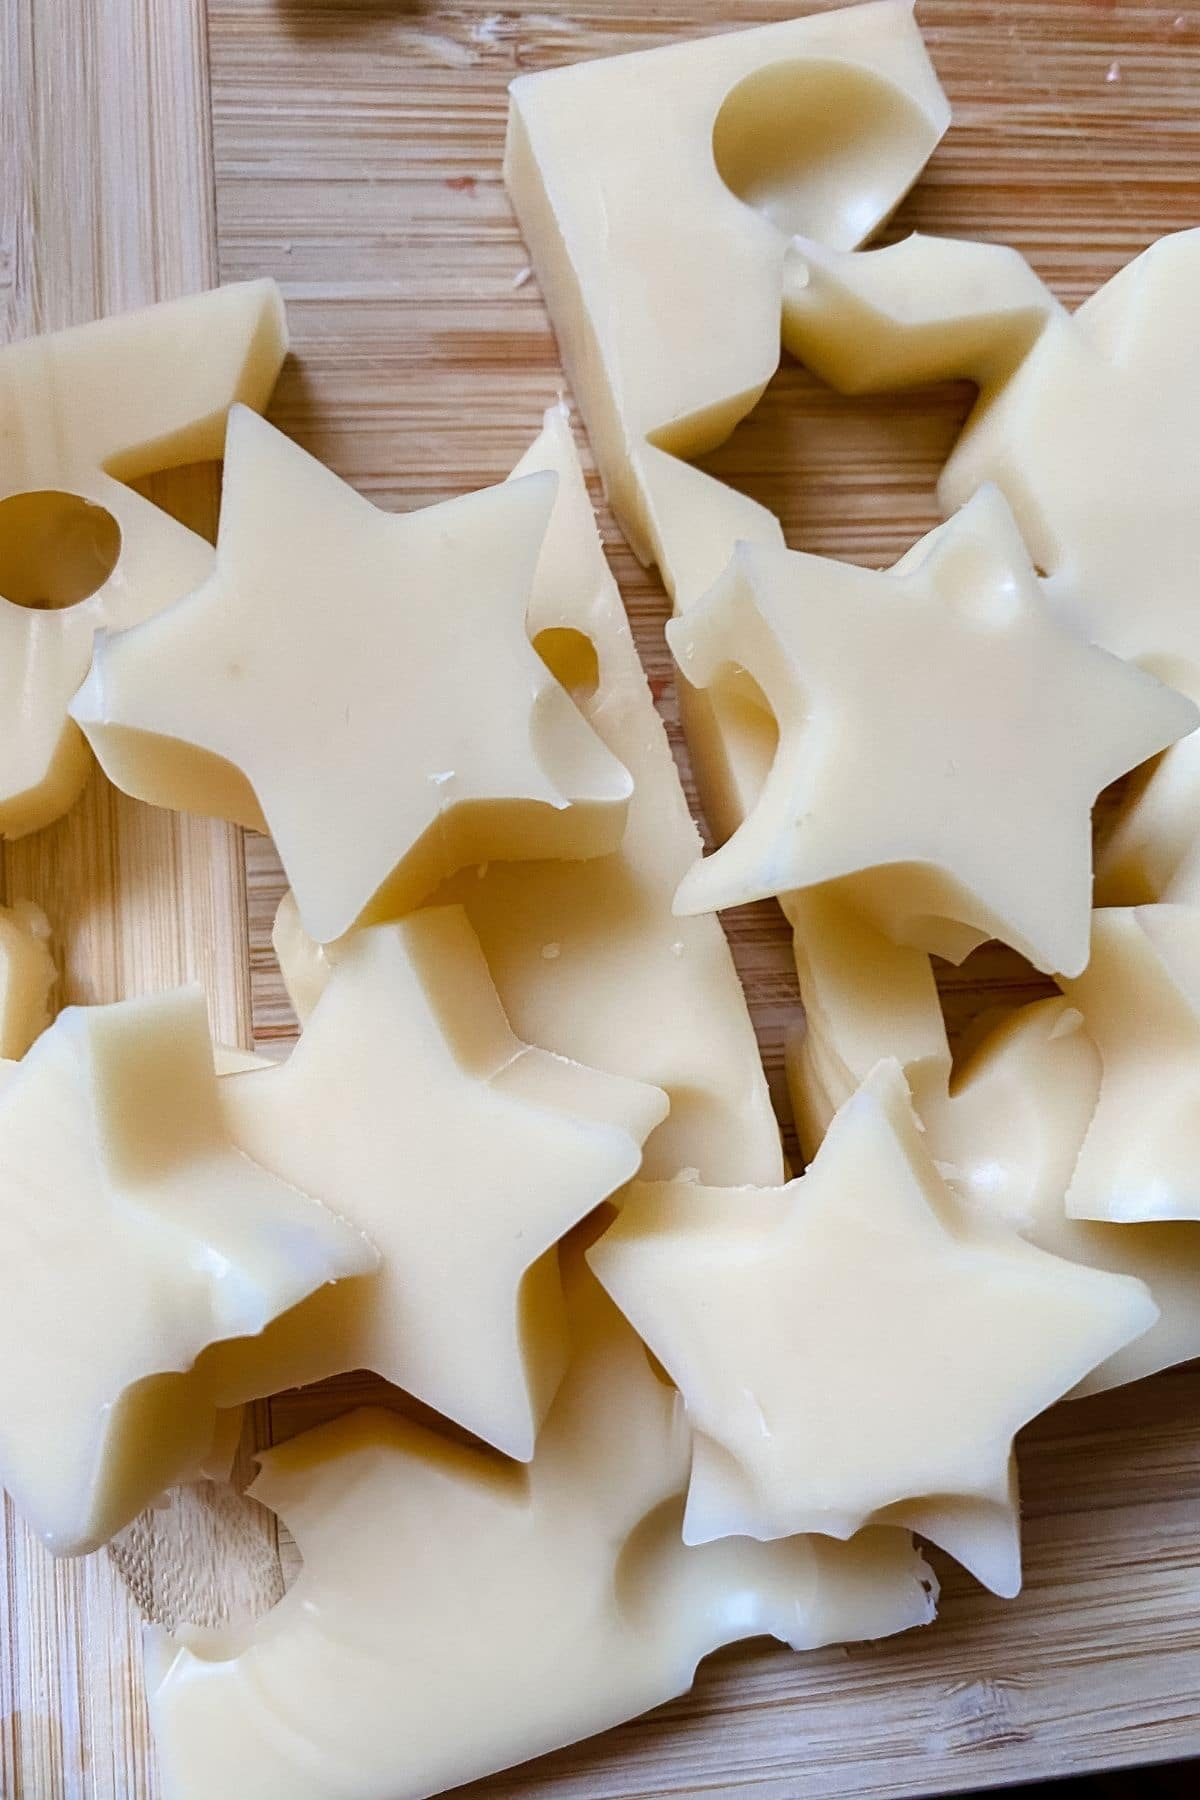 Star shaped cheese pieces